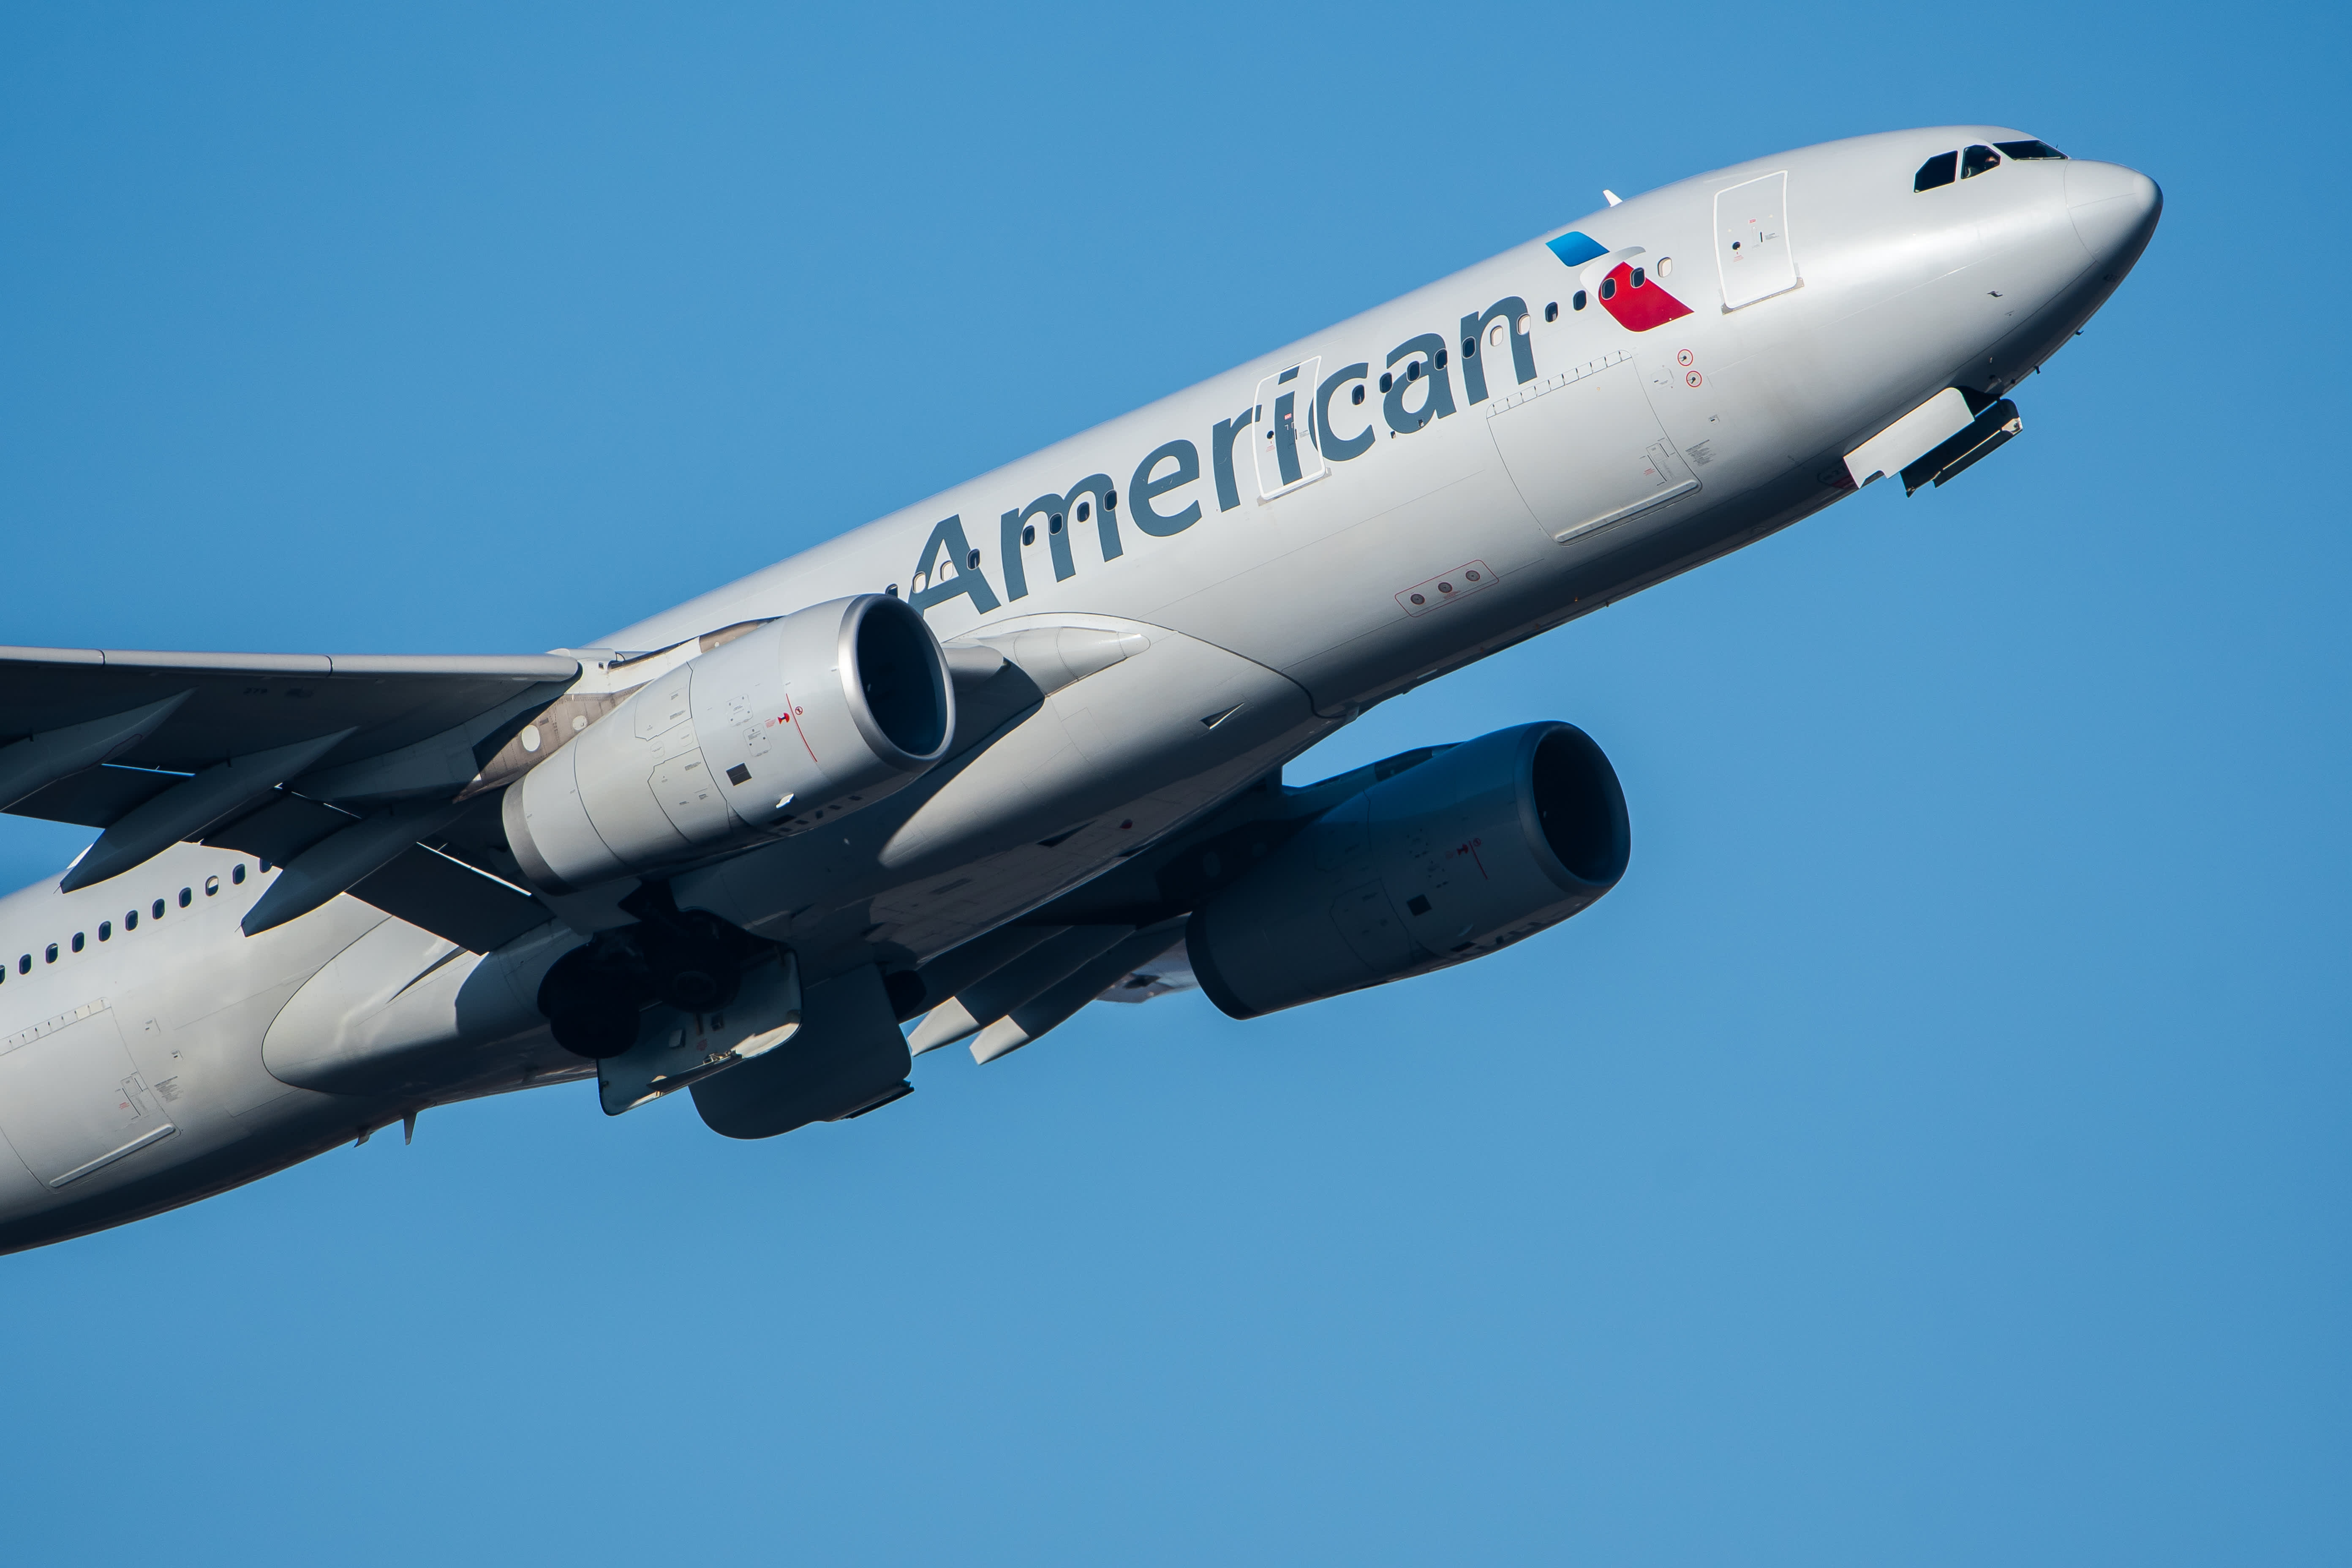 American Airlines reports $2.4 billion net loss in third quarter, cuts cash burn